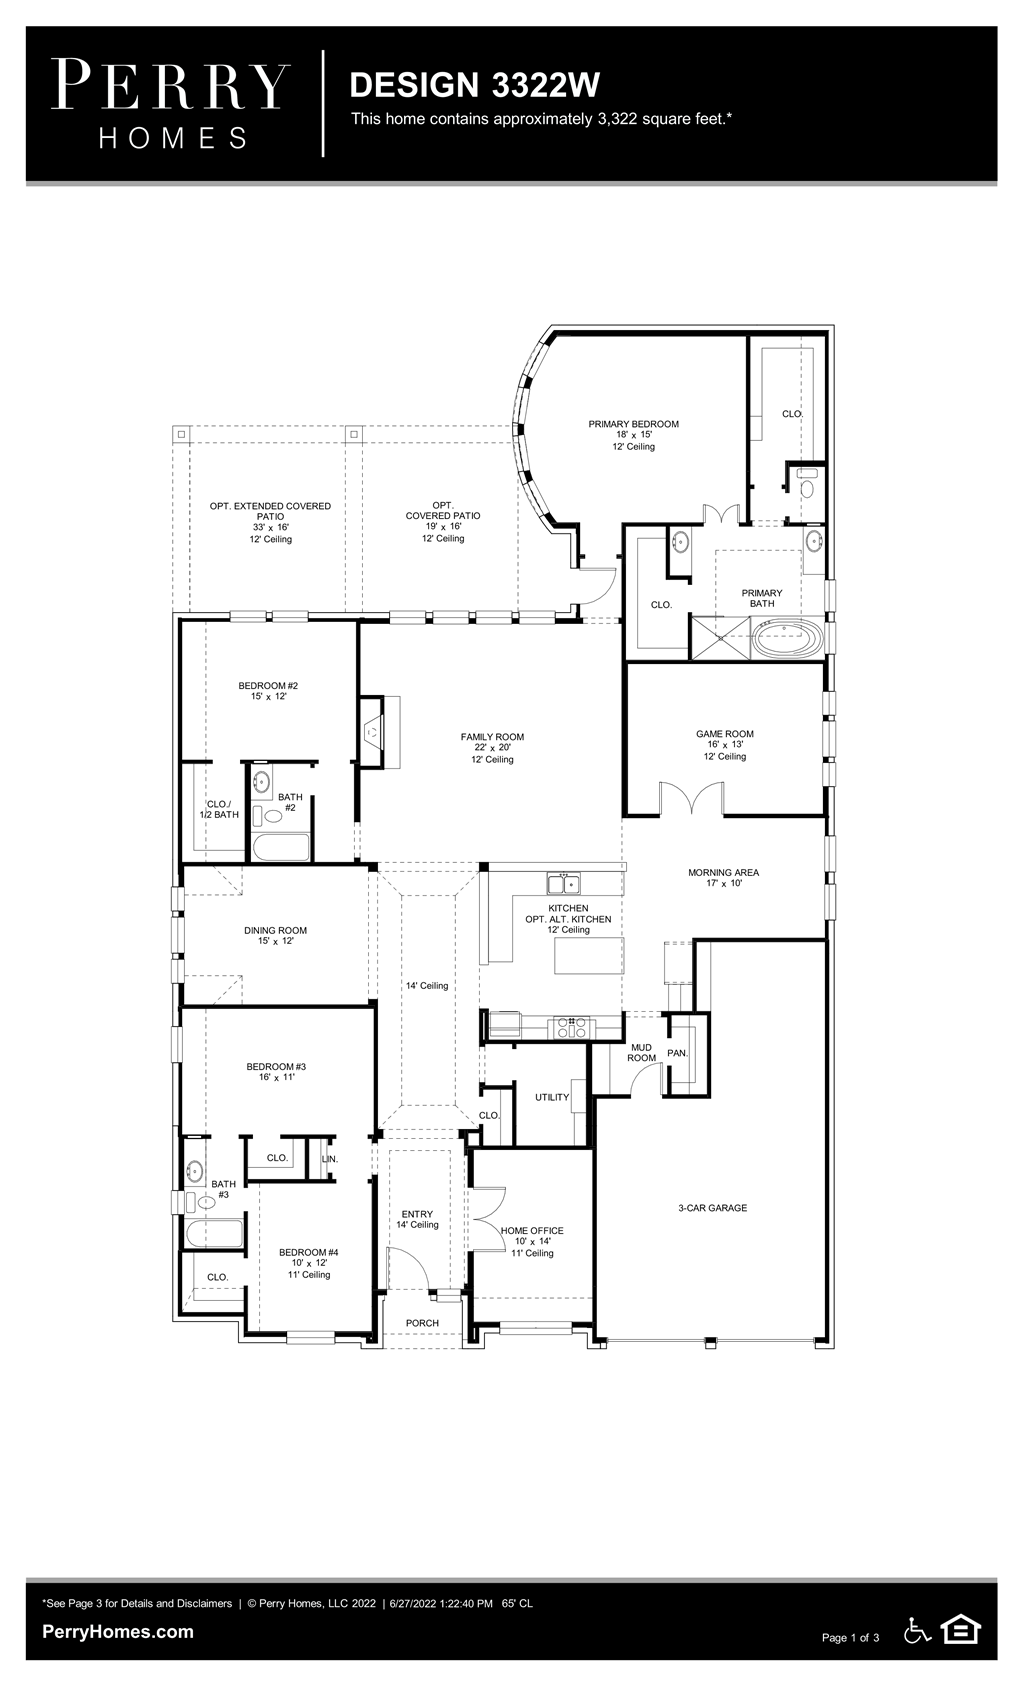 Floor Plan for 3322W